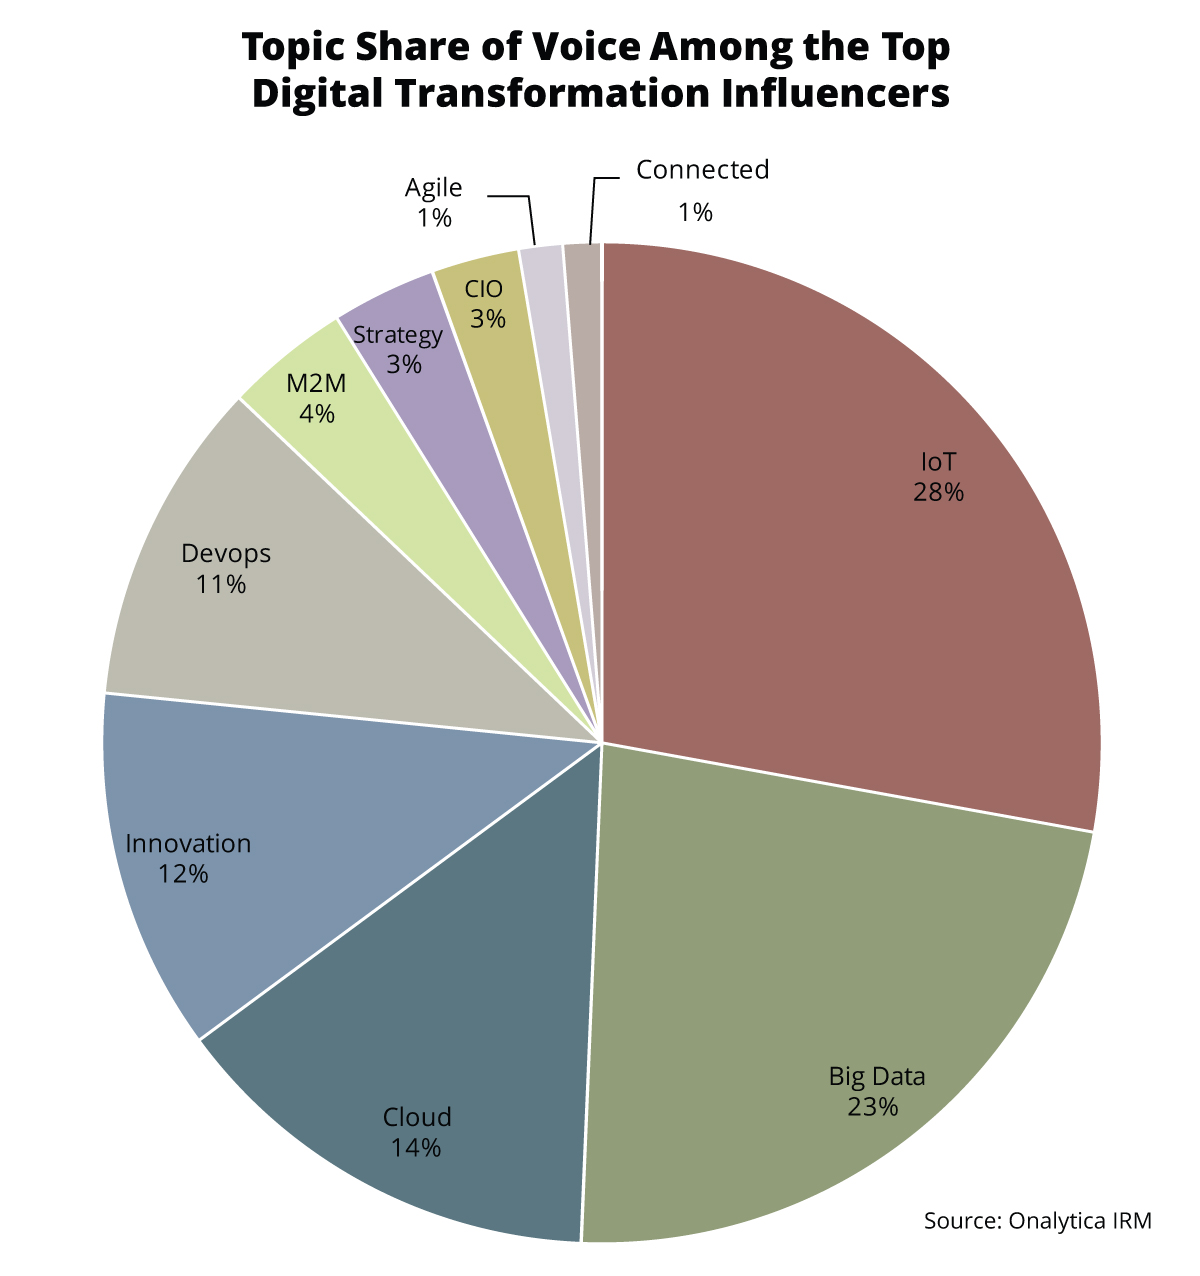 Onalytica - Digital Transformation - Top 100 Influencers and Brands - Topic Share of Voice